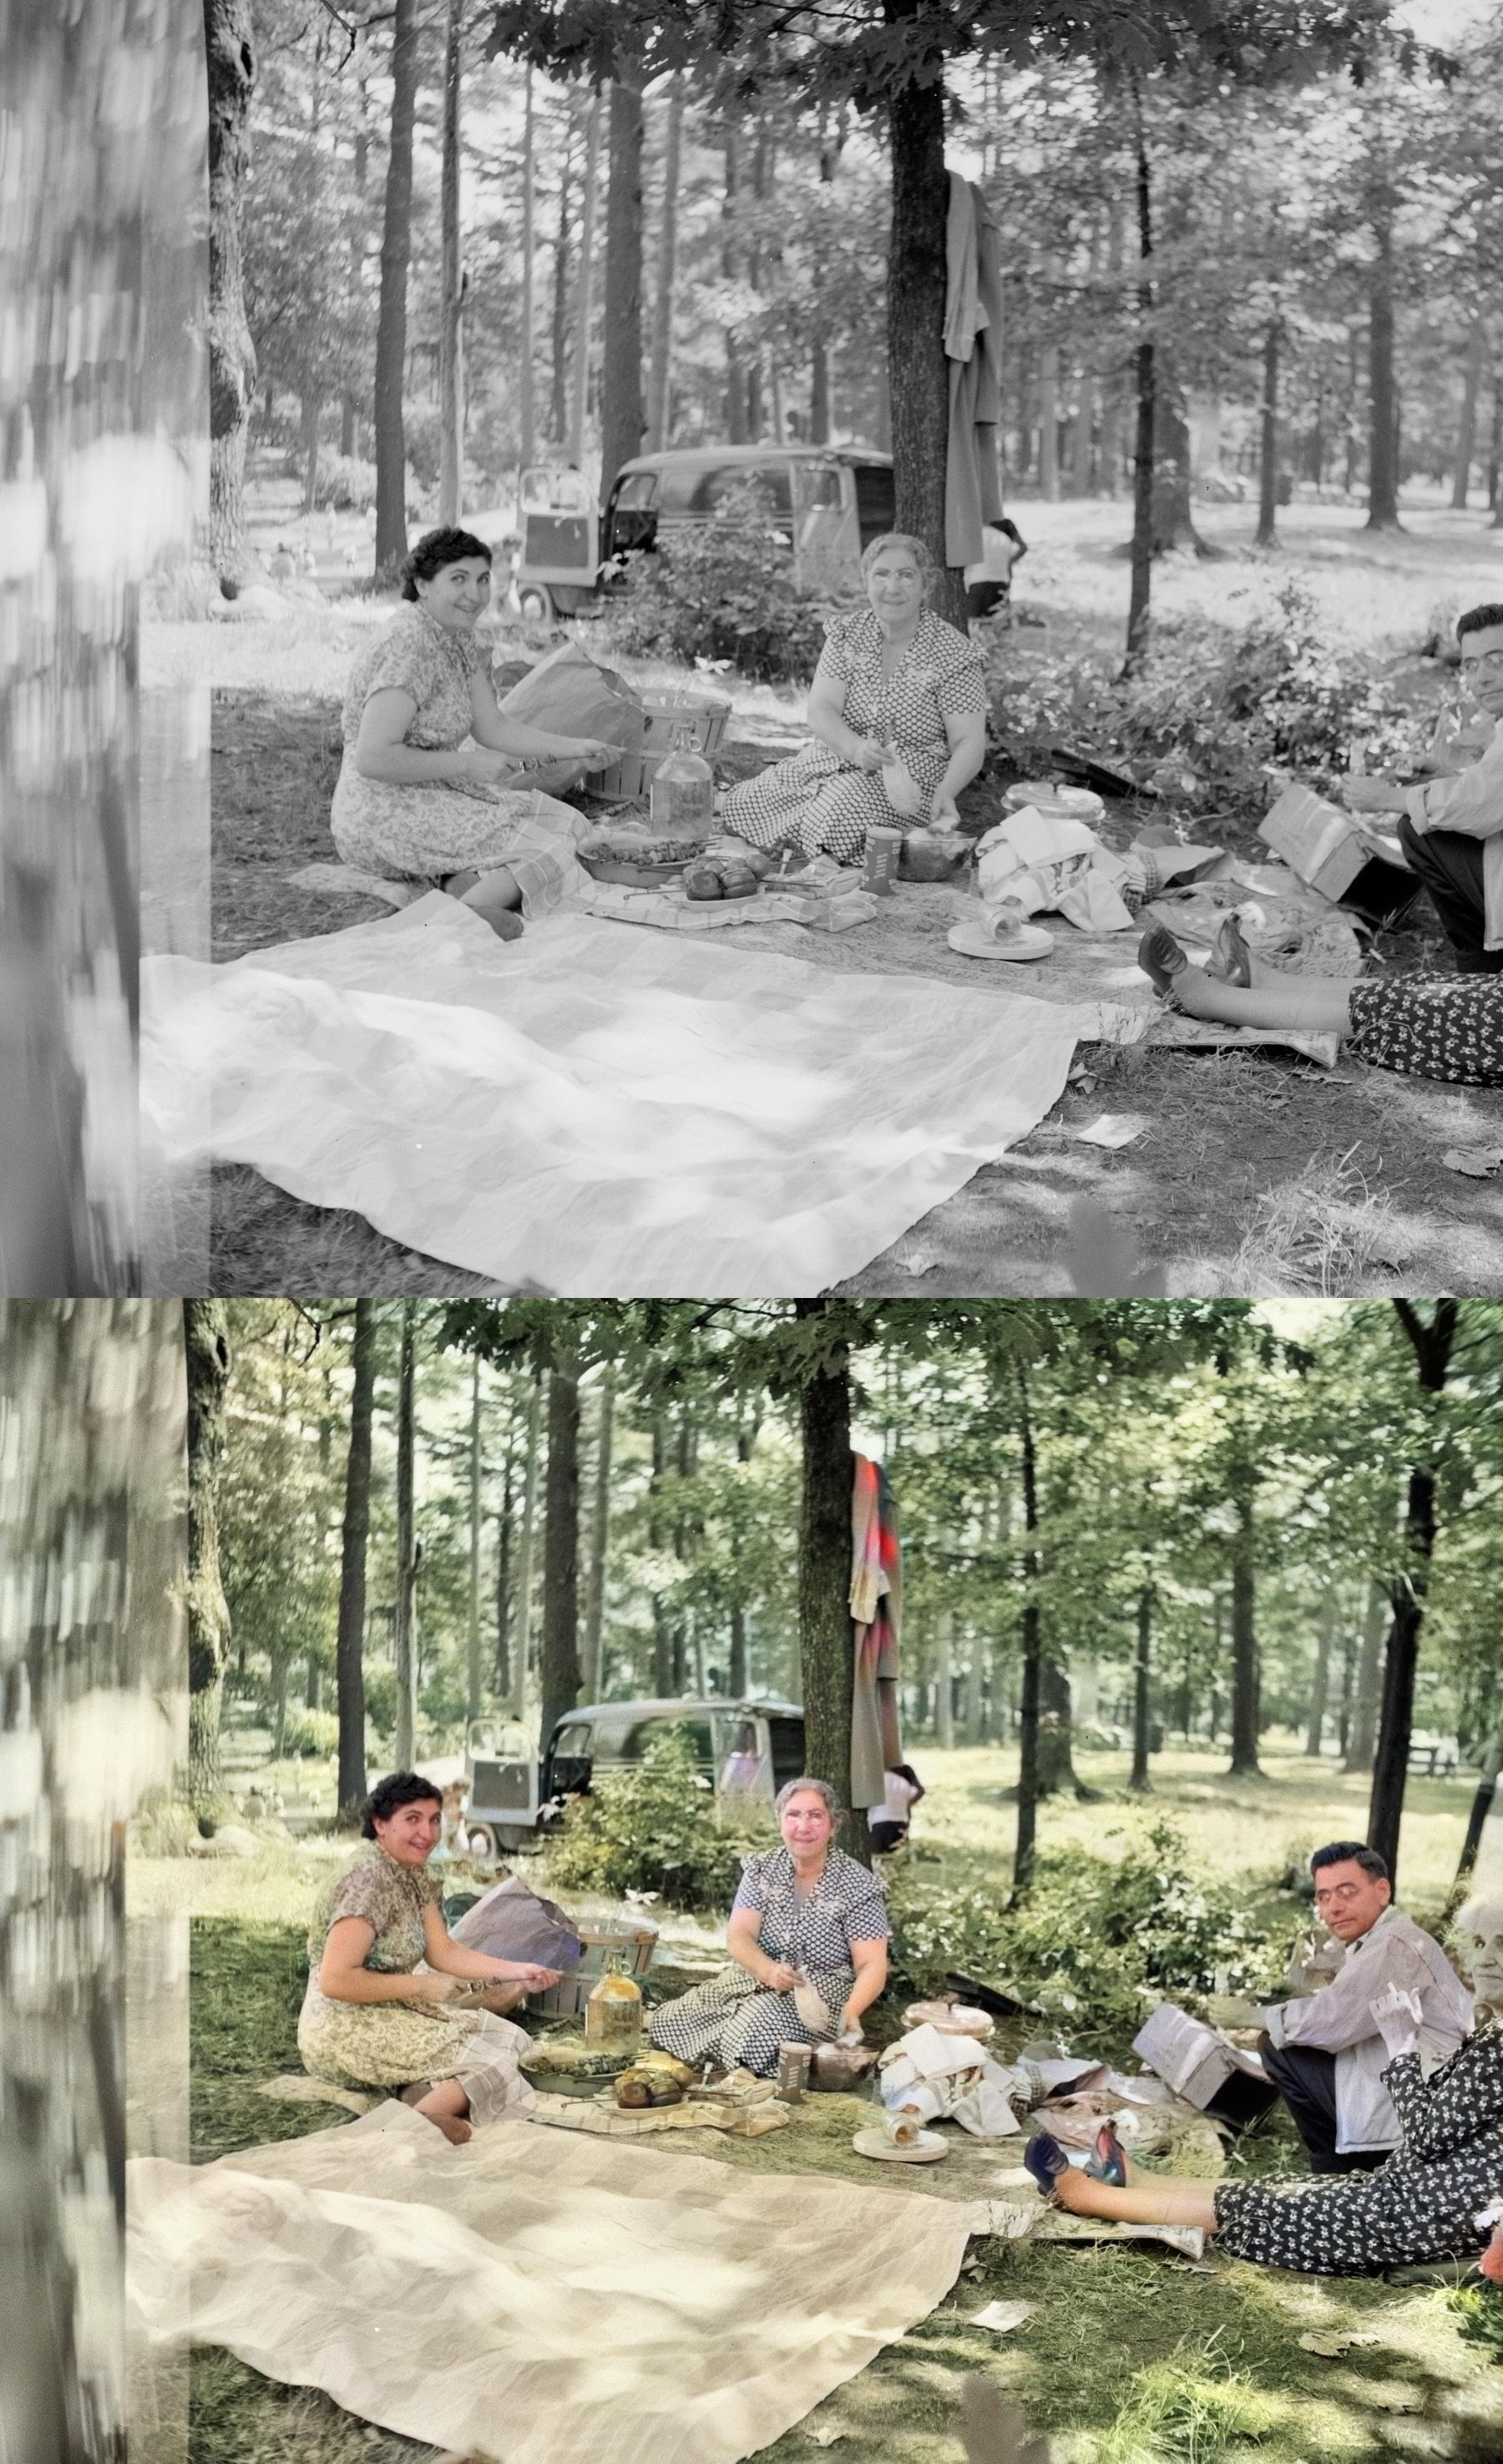 Background Removal, Remove Background on Images Colorize, Restore color FAST. GET FREE SAMPLE!